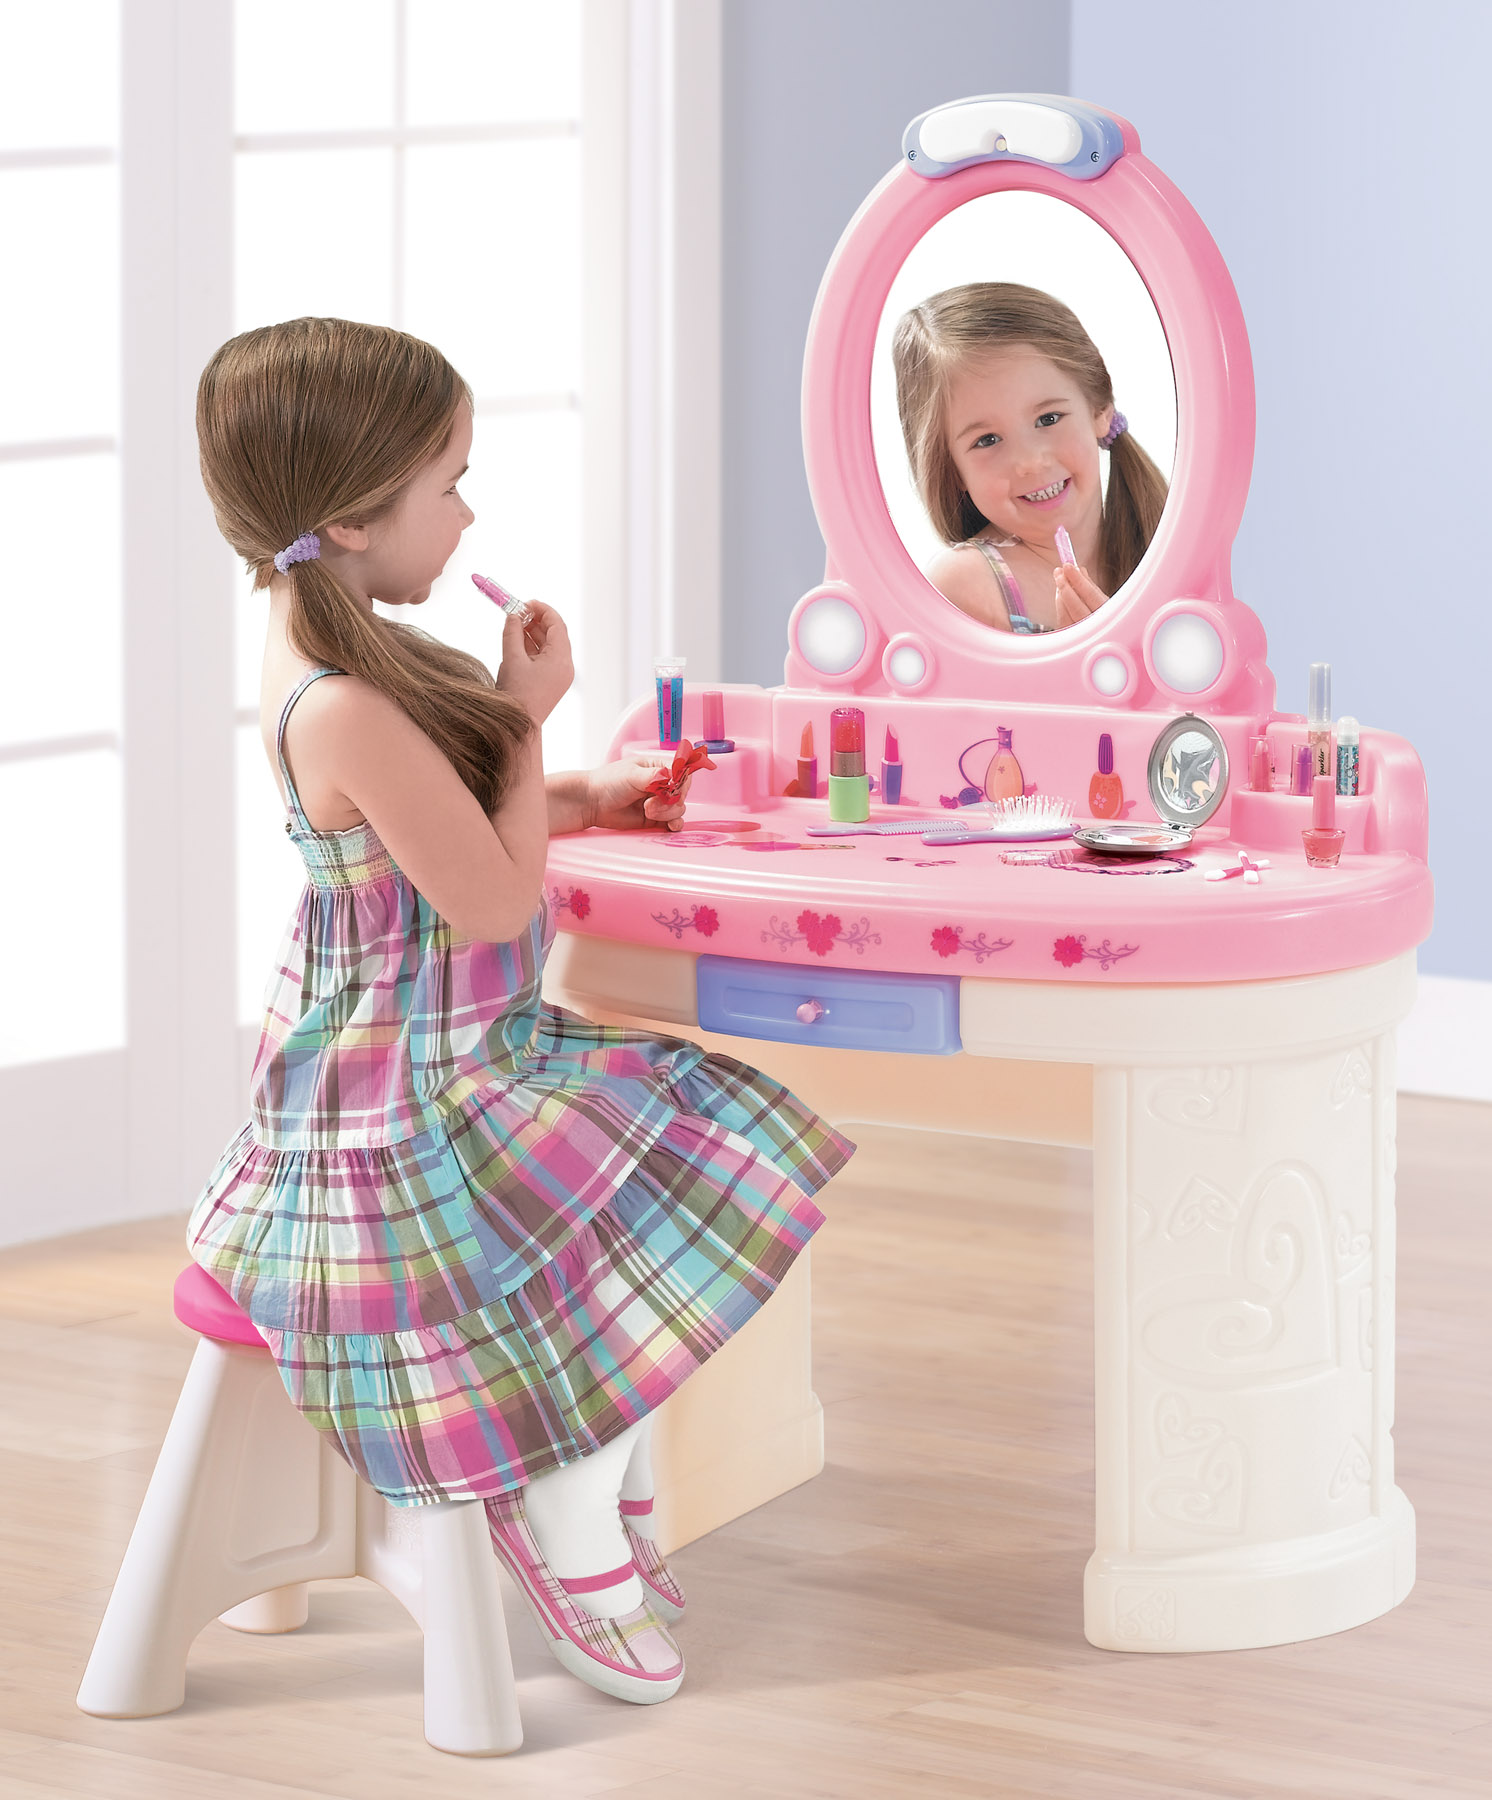 8 Toys For Pretend Play Professions Step2 Blog